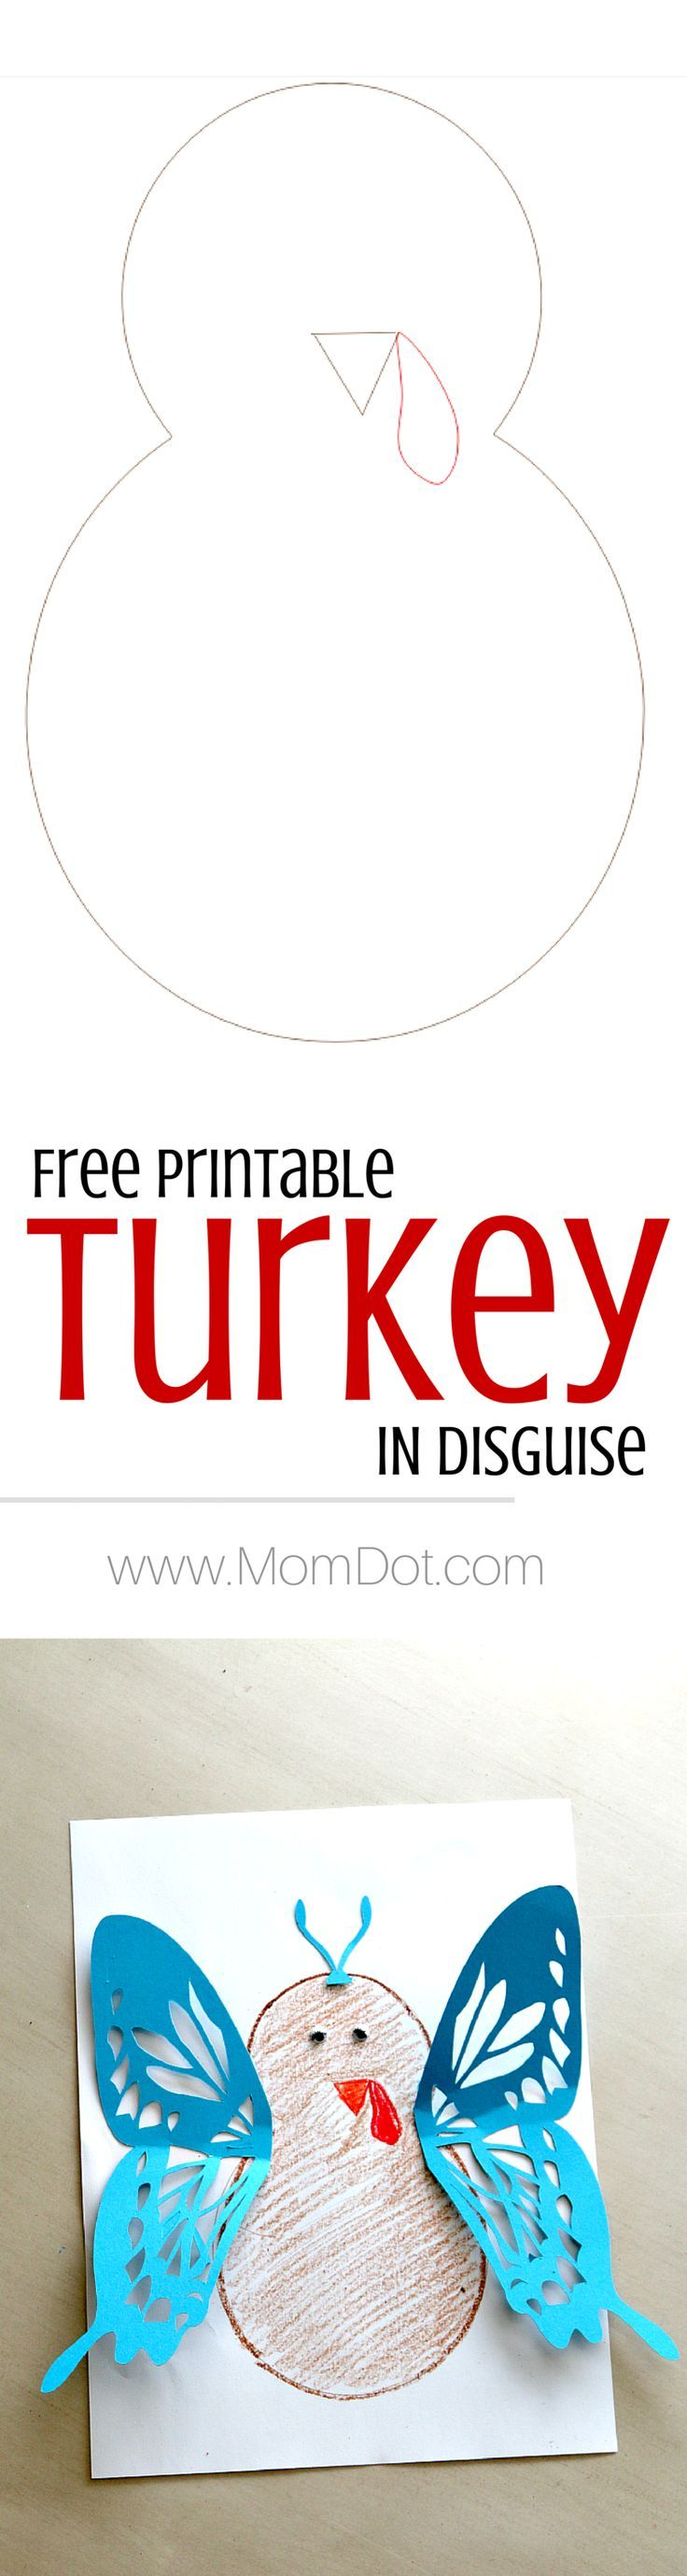 Turkey in Disguise free printable, create your own fun turkey at home in every way BUT a turkey! Thanksgiving fun at its finest for kids. Plus print free over and over again!                                                                                                                                                                                 More